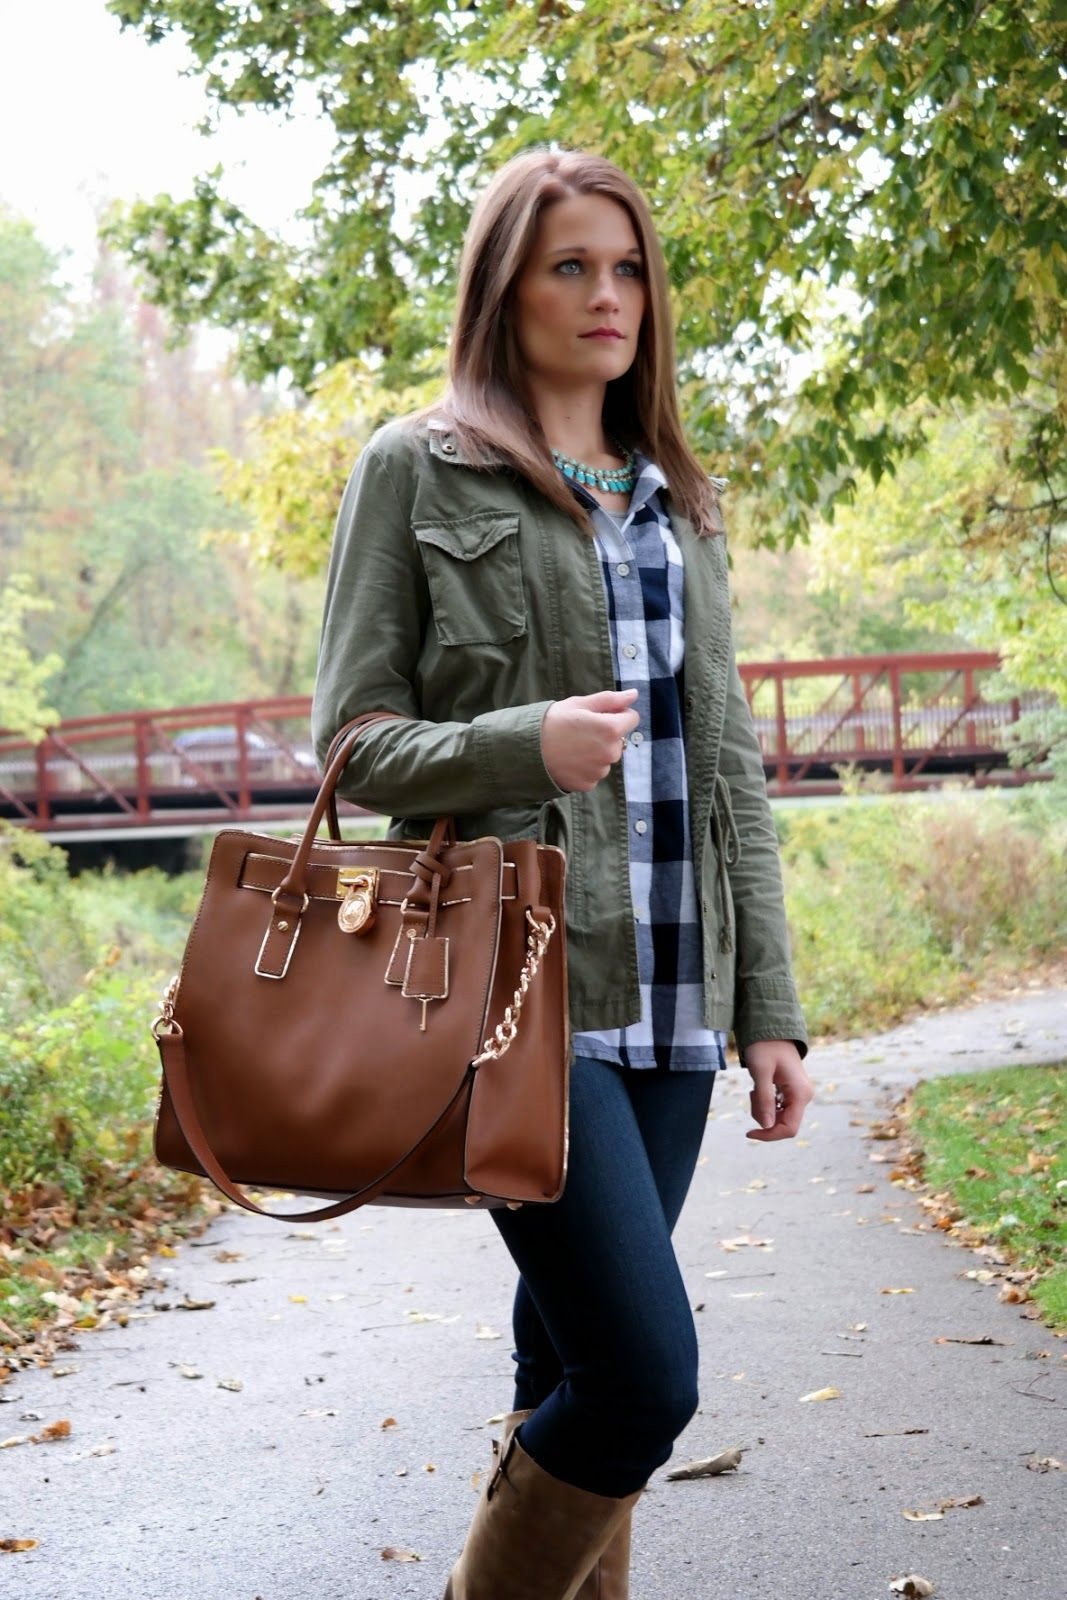 Regally Soled: Plaid in the Park